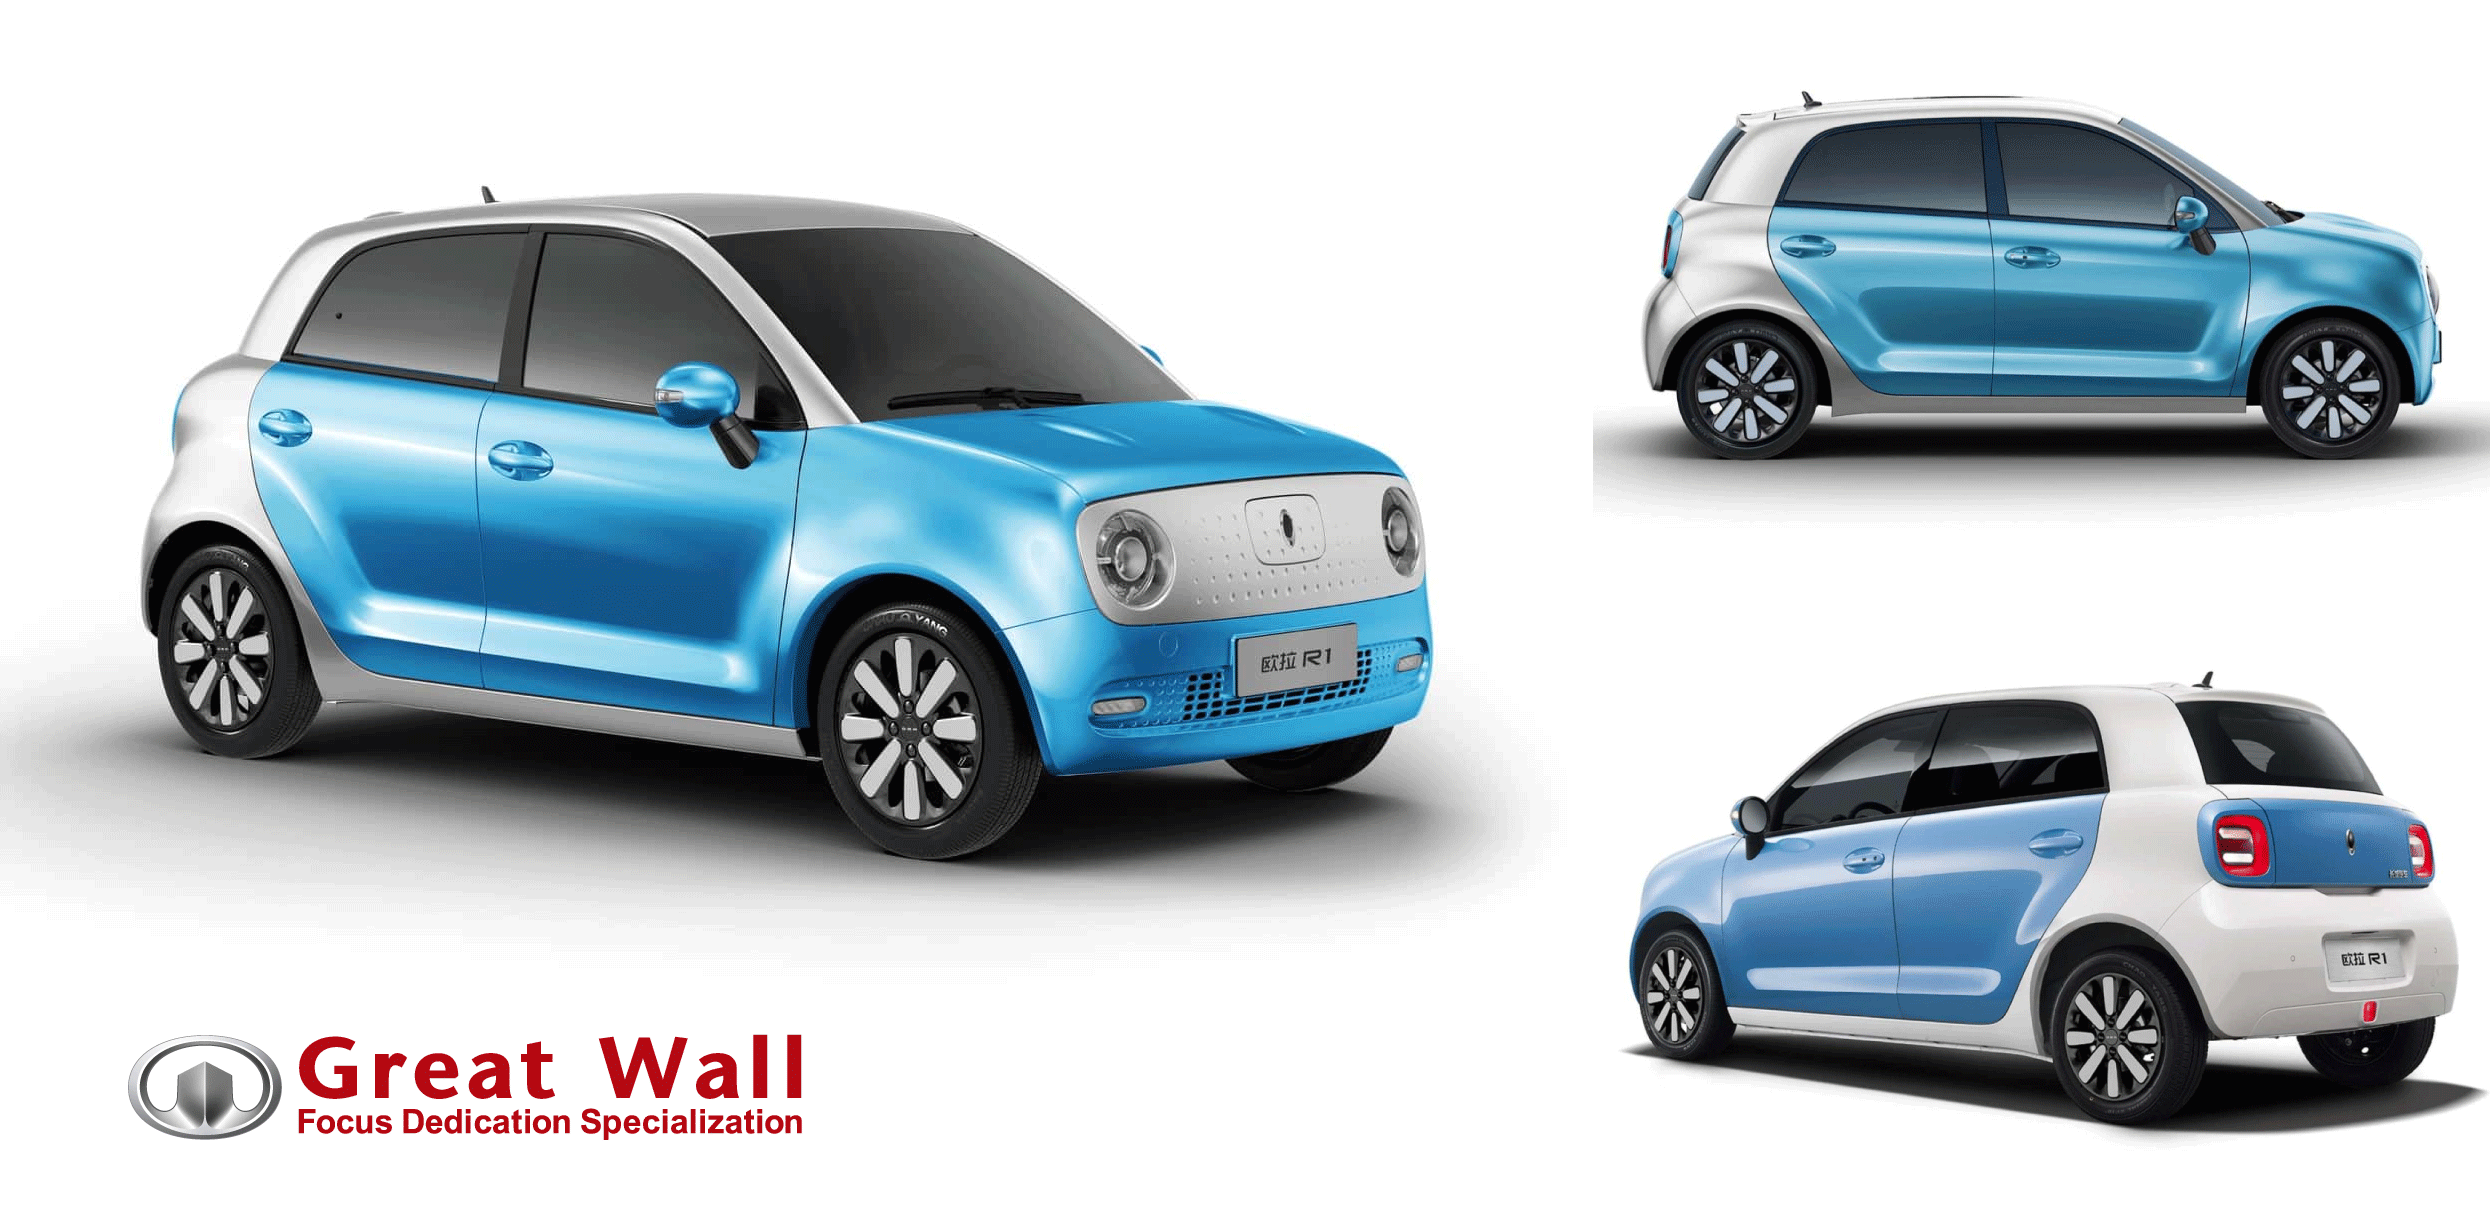 great-wall-carro-electrico